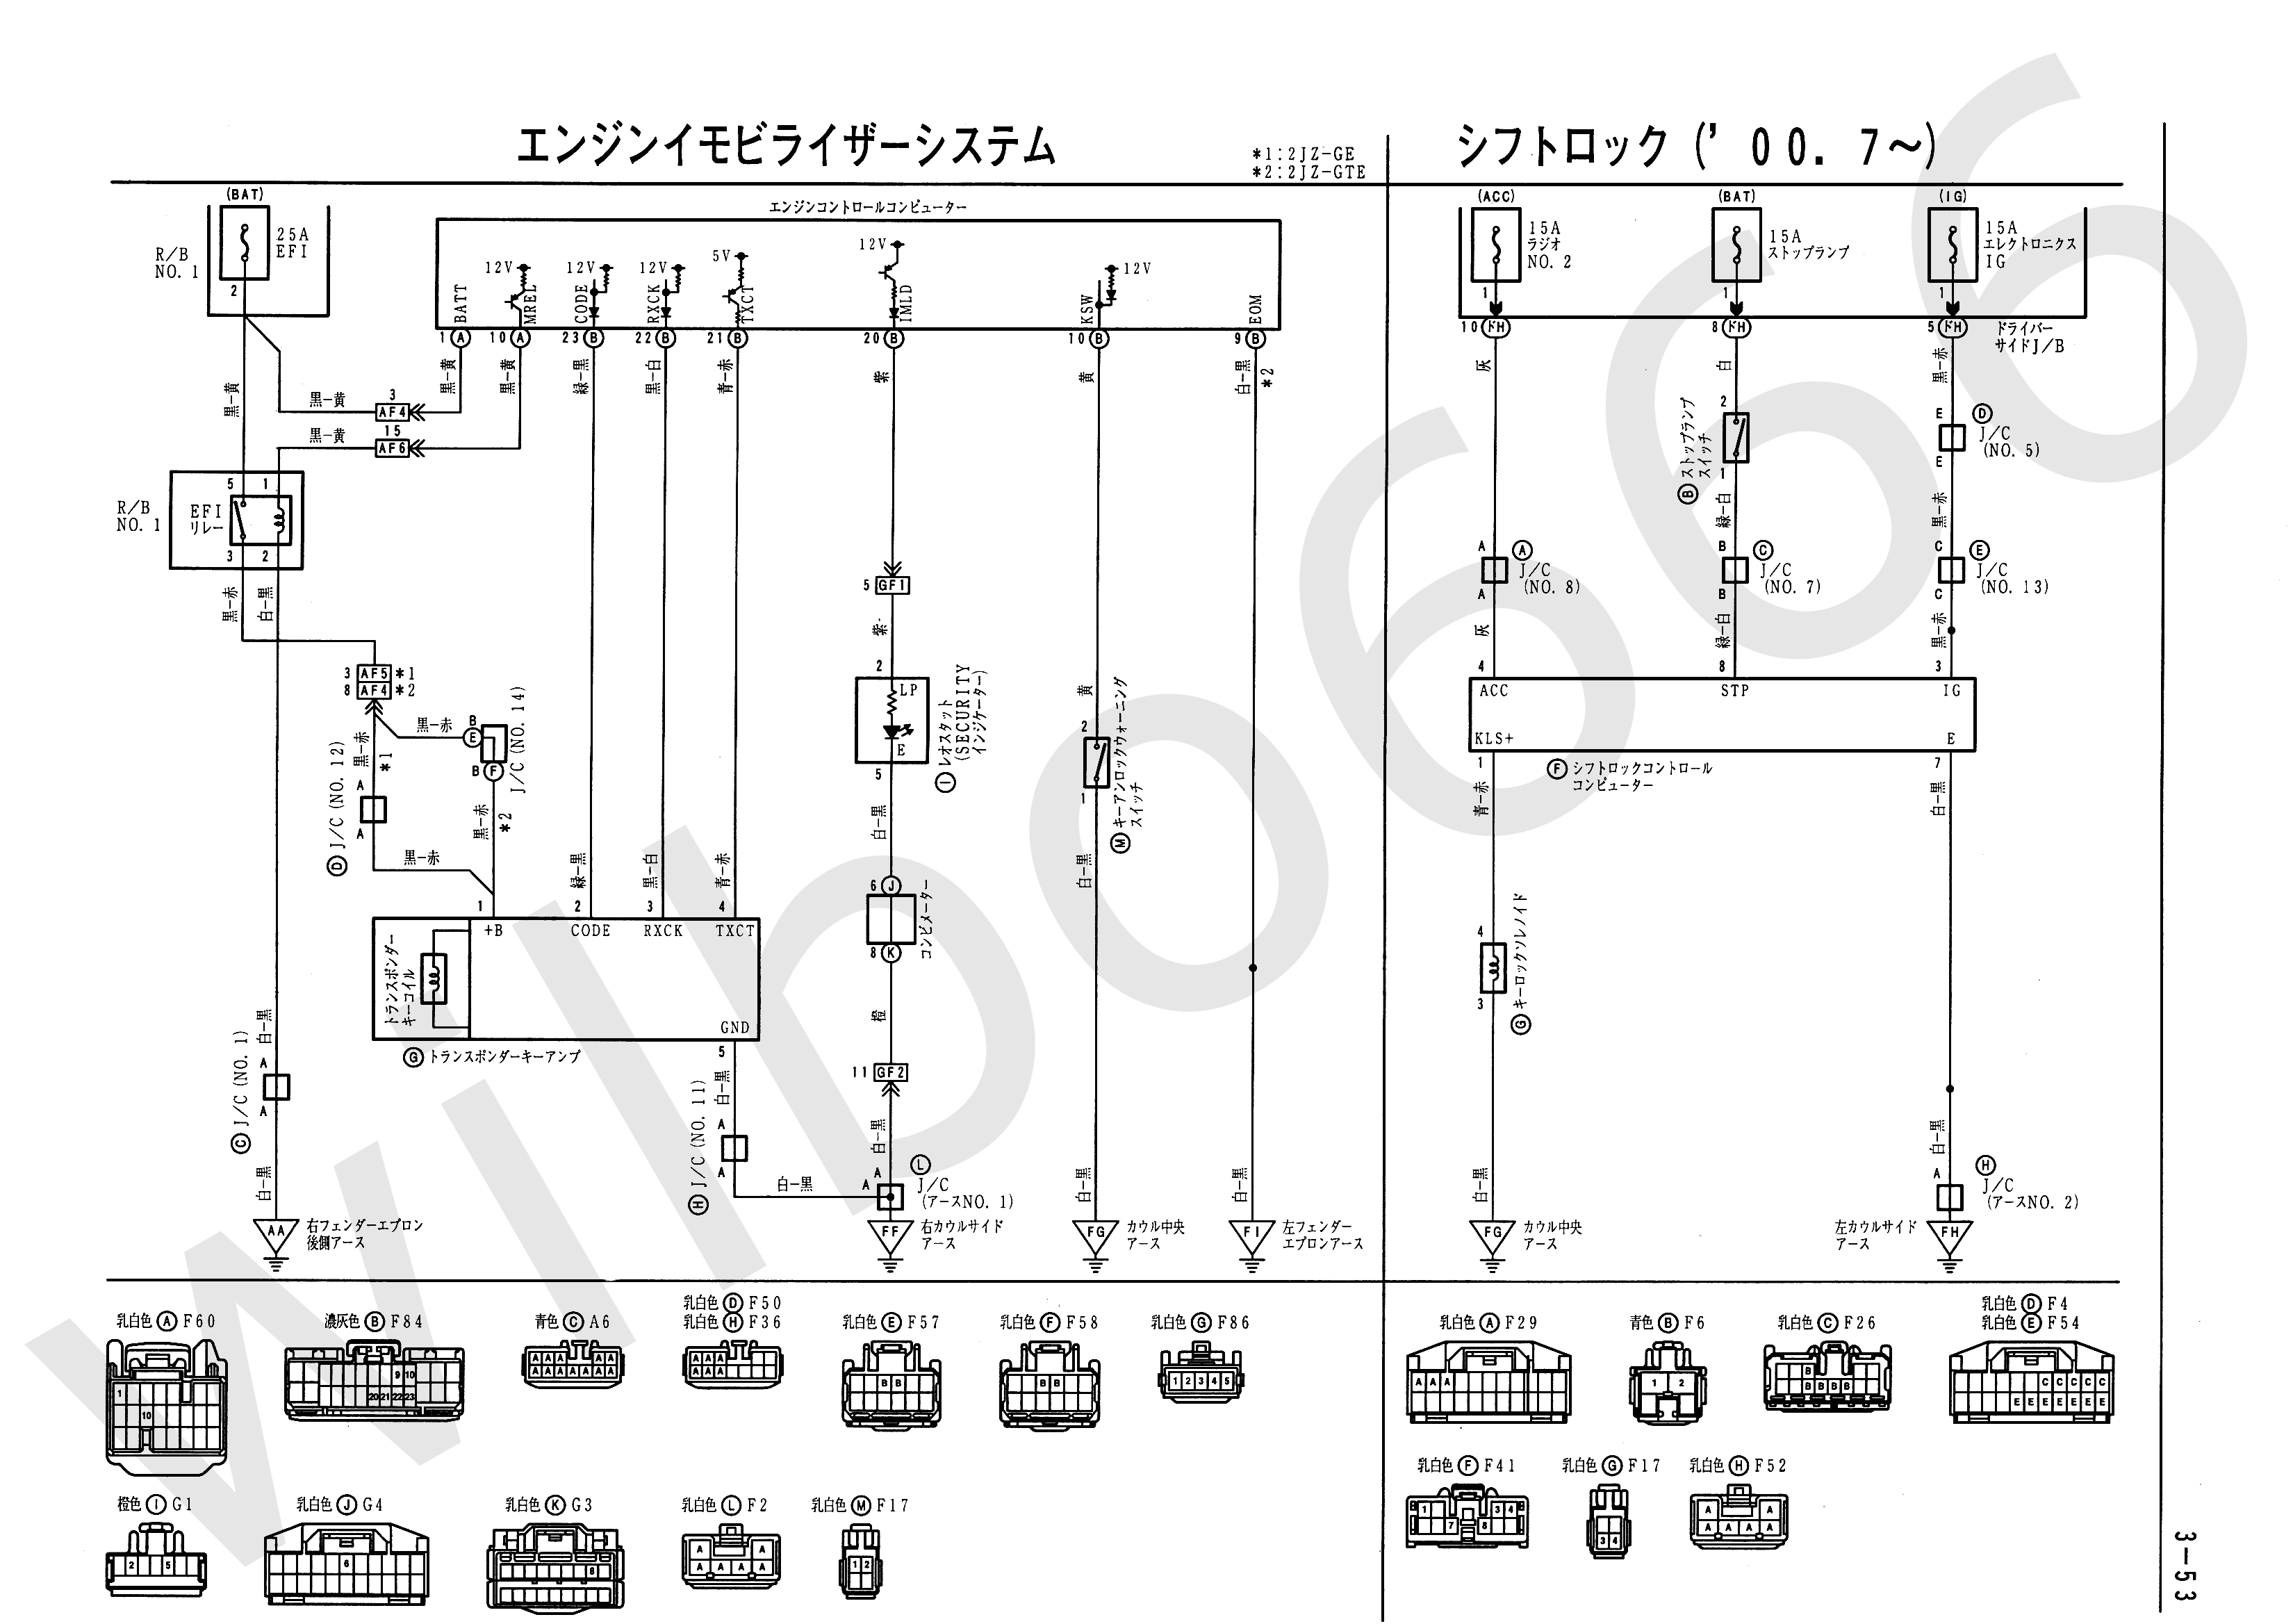 JZS161 Electrical Wiring Diagram 6748505 3 53 apexi vafc wiring diagram apexi vafc wiring diagram at soozxer.org